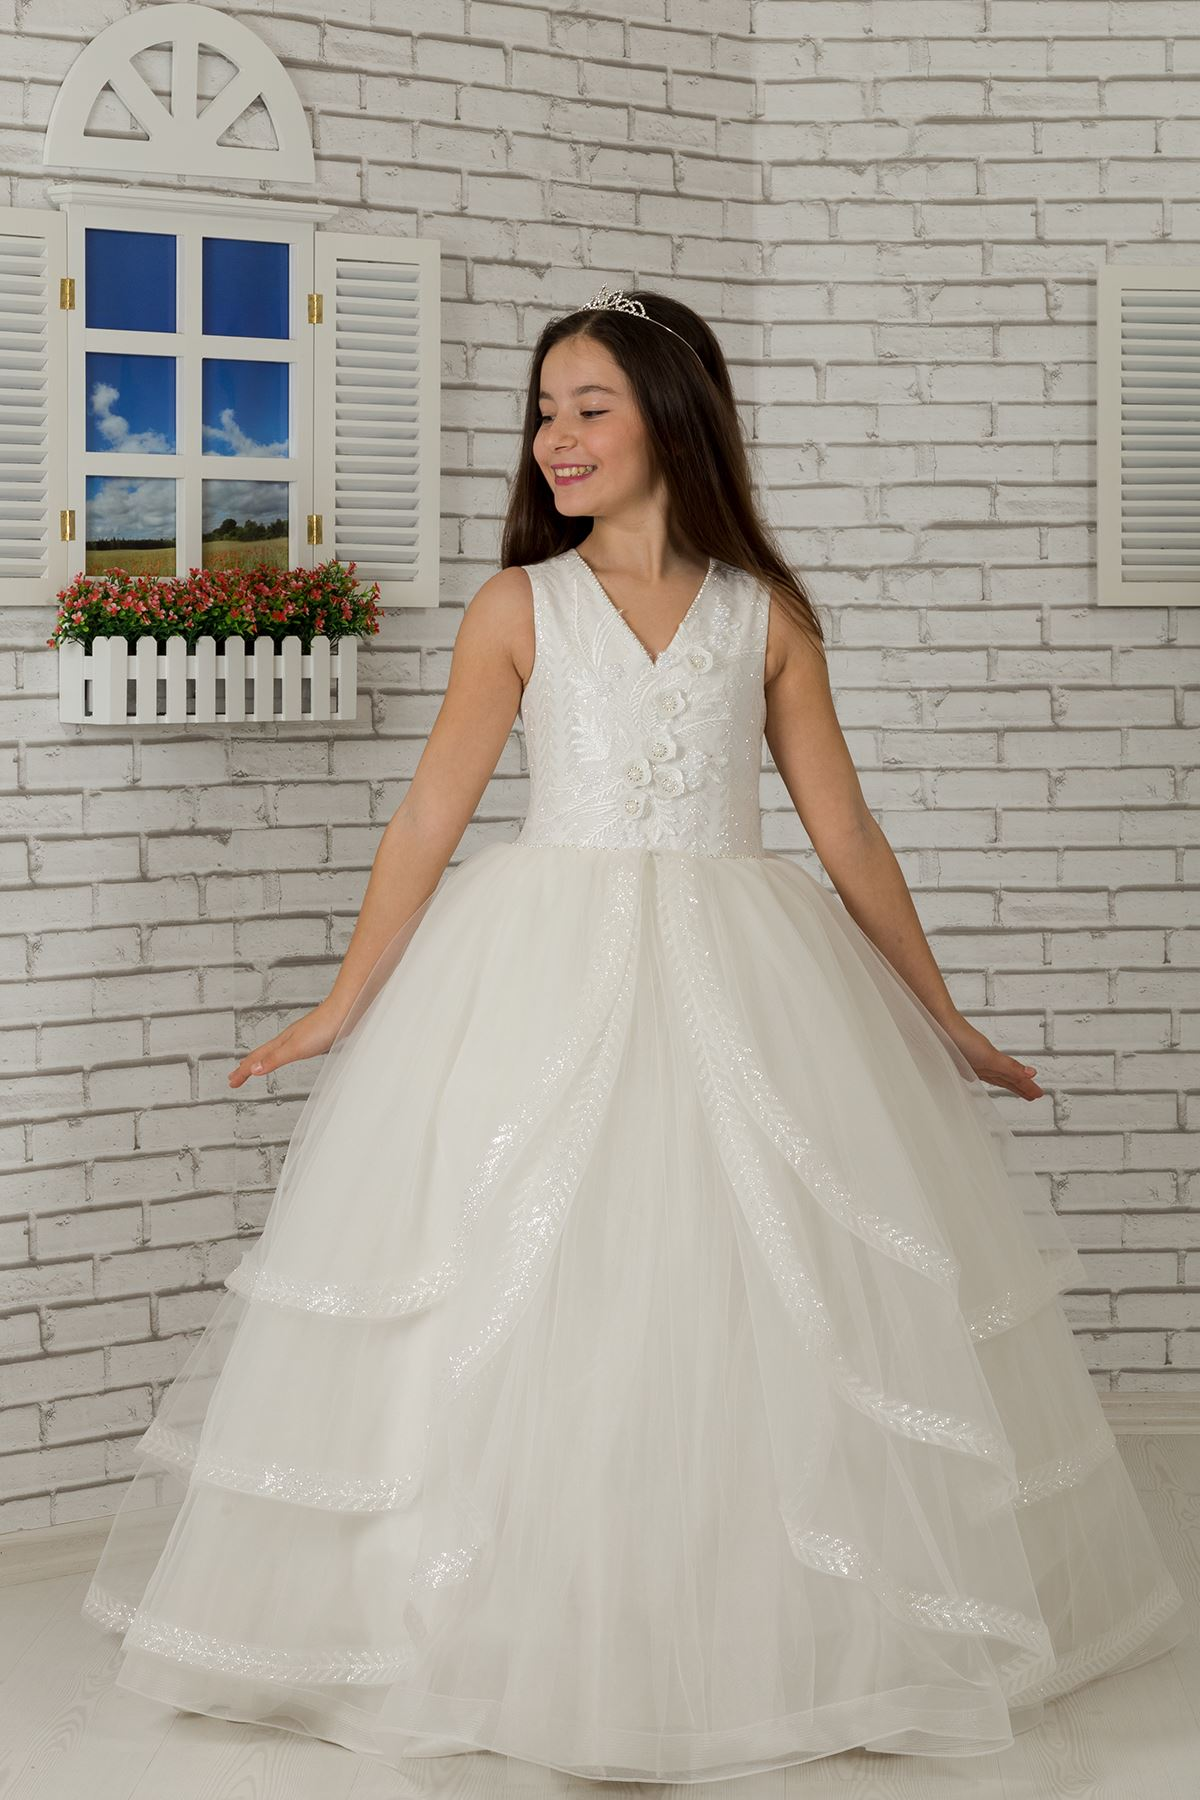 3-dimensional lace, layered skirt detail, Fluffy Girl's Evening Dress 615 Cream